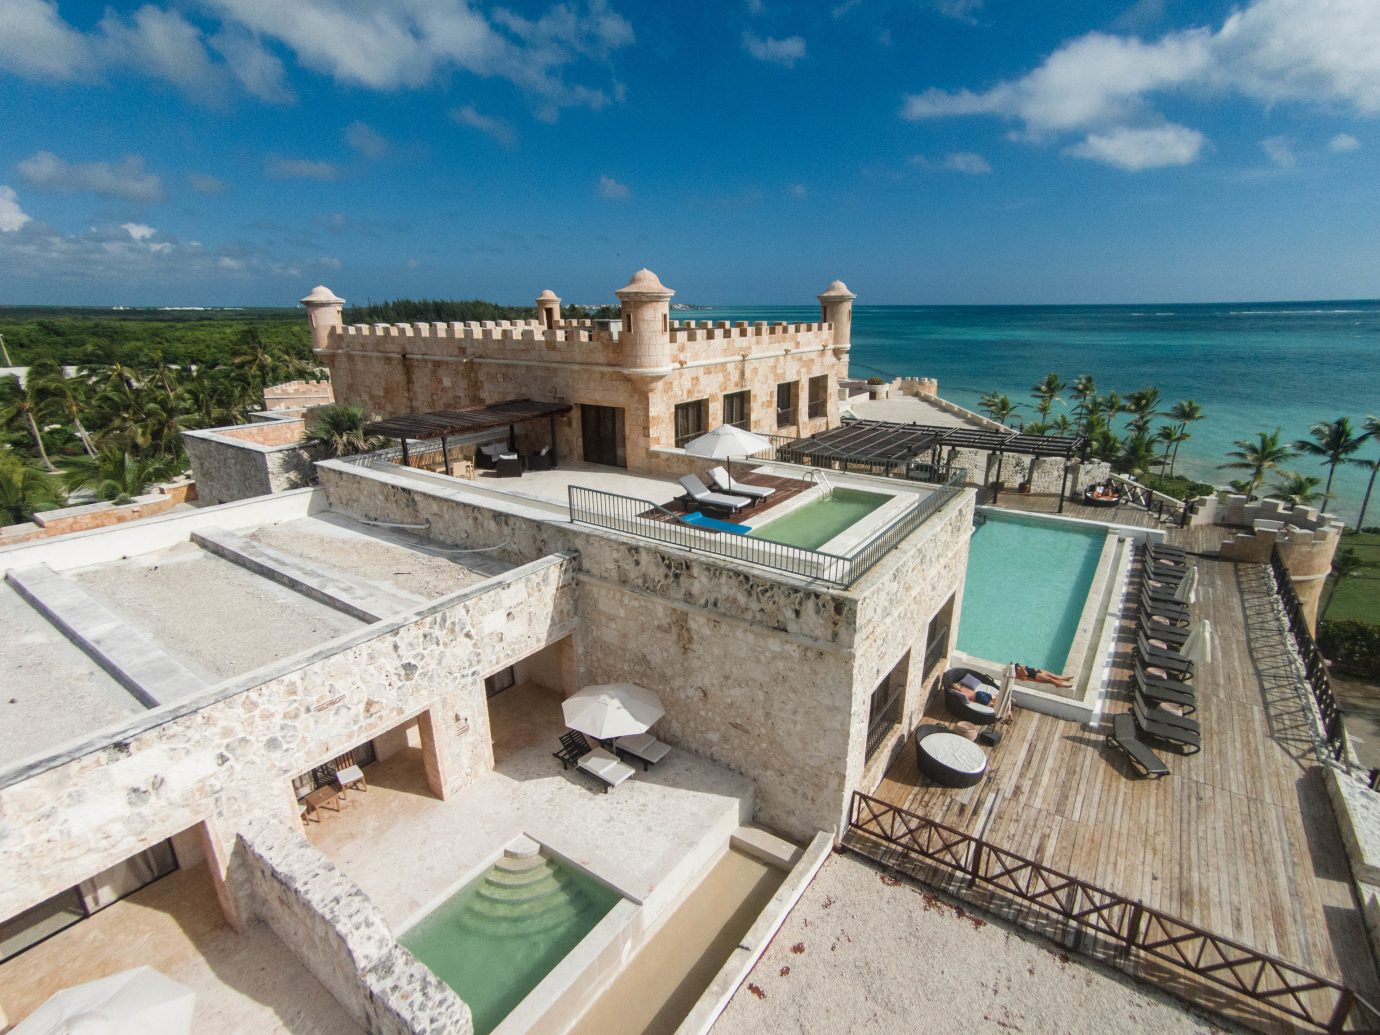 All-Inclusive Resorts caribbean sky outdoor property vacation estate Villa Sea palace mansion Resort cement stone